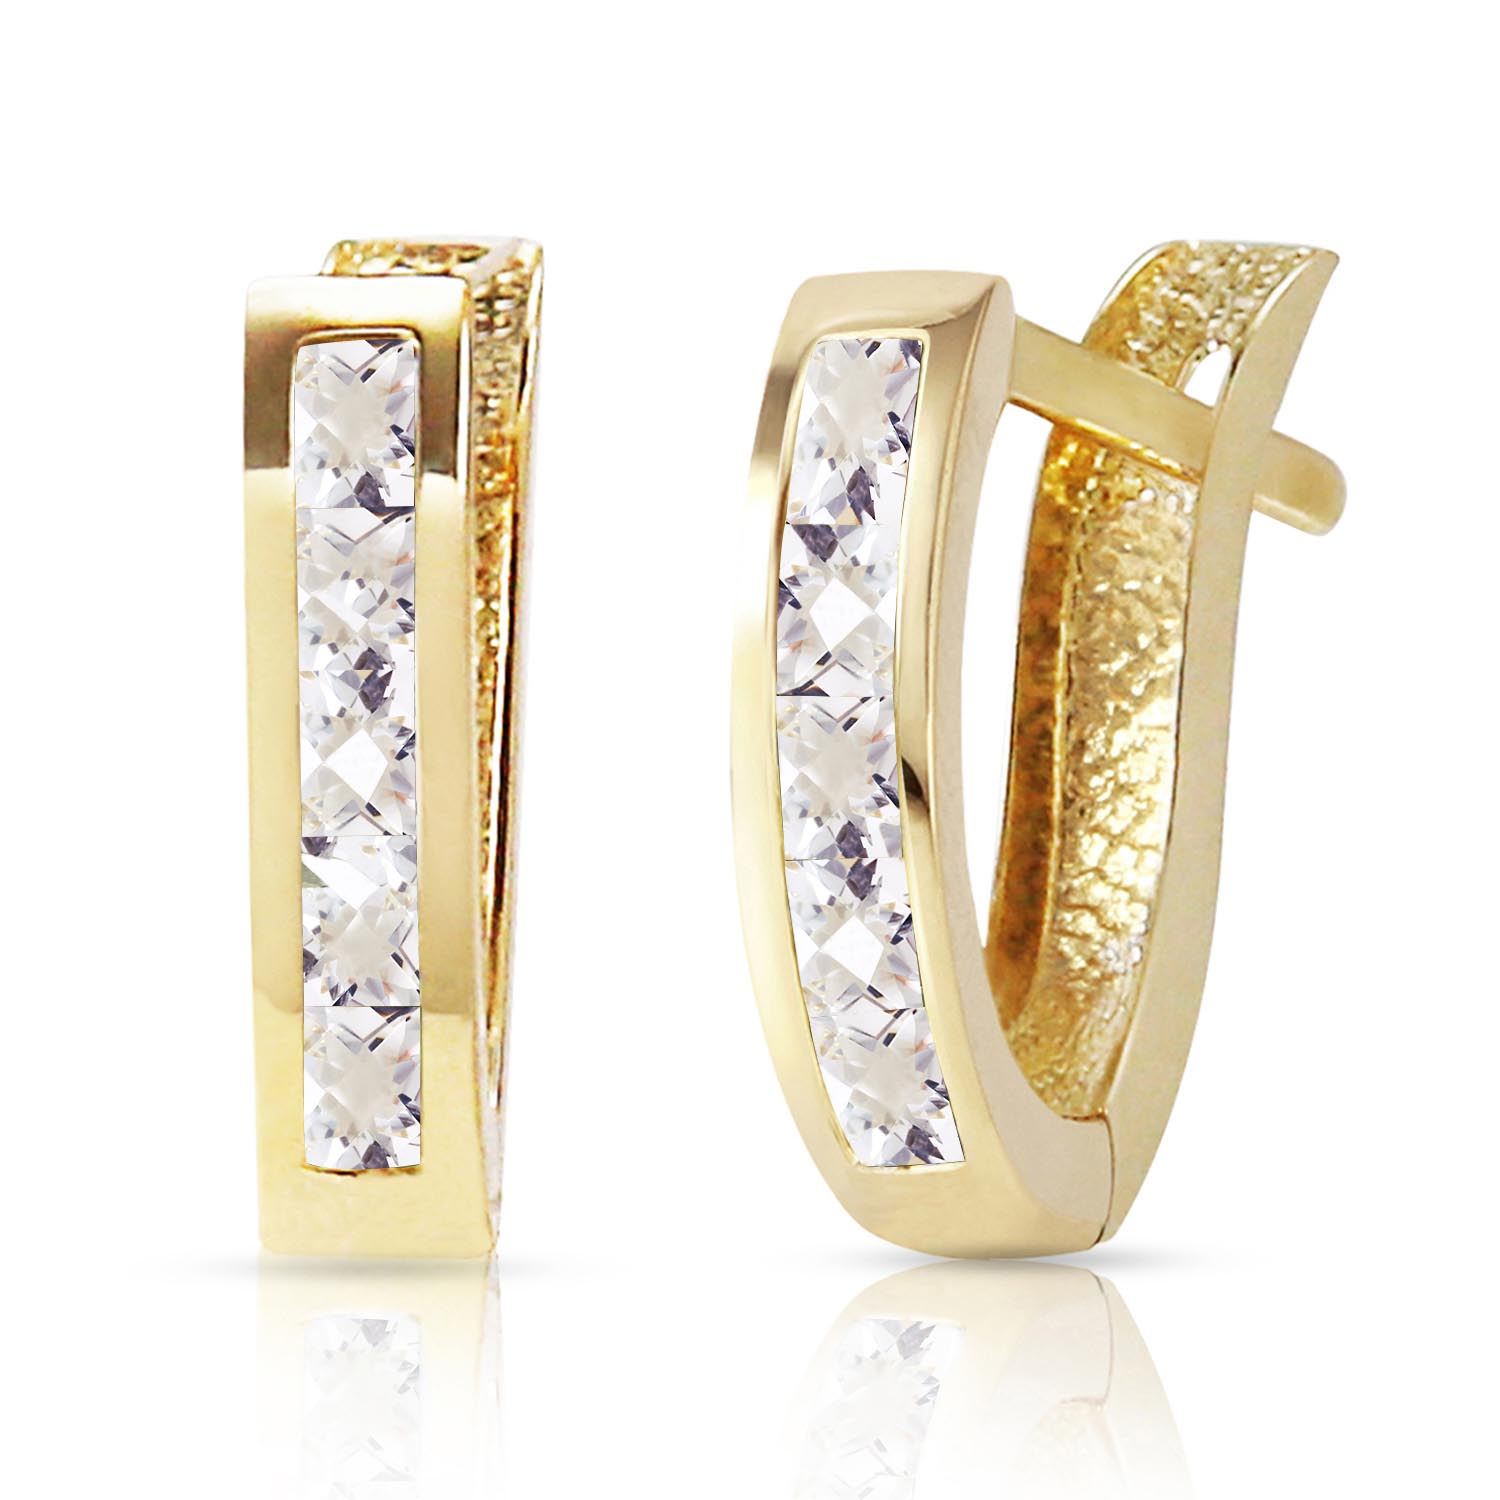 White Topaz Acute Huggie Earrings 1.2 ctw in 9ct Gold